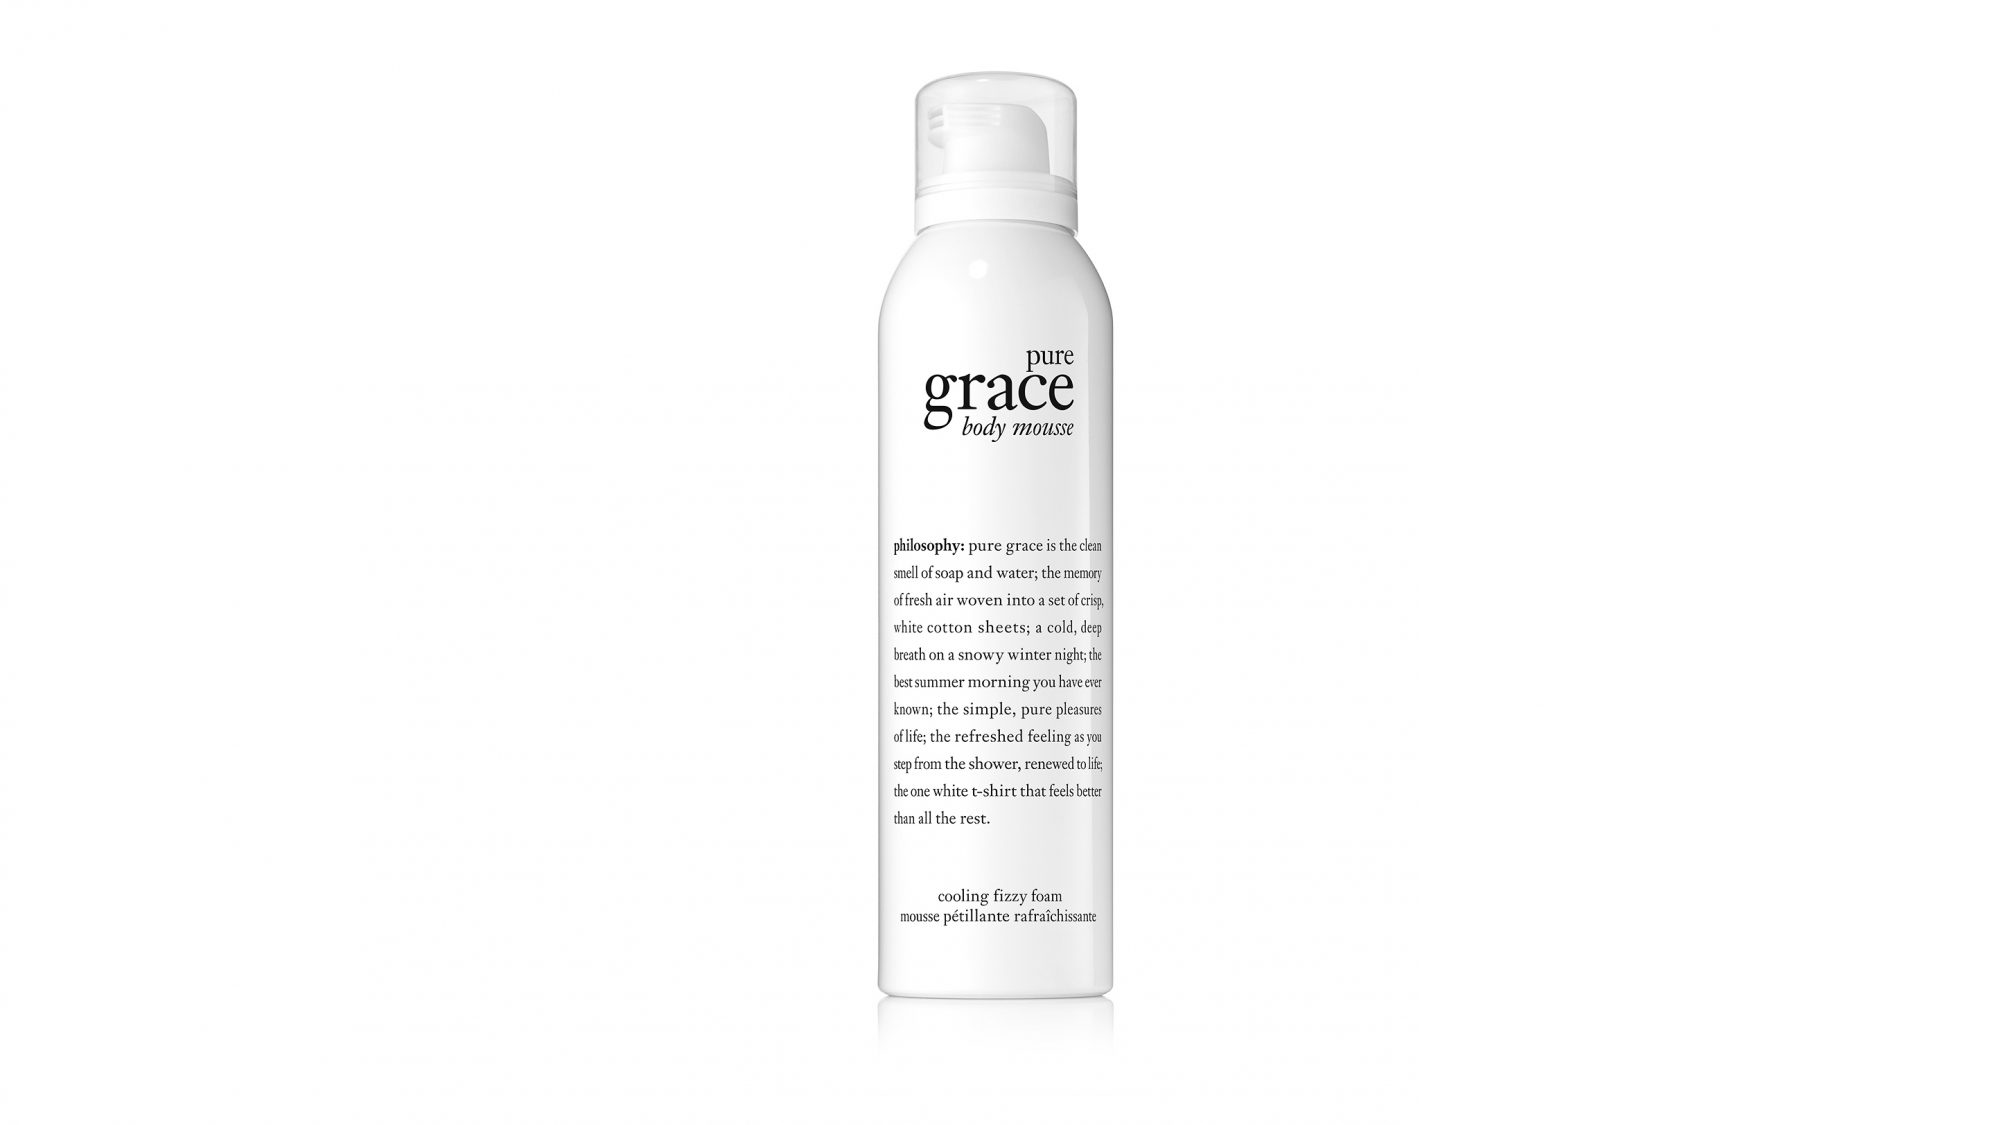 beauty product philosophy body mousse